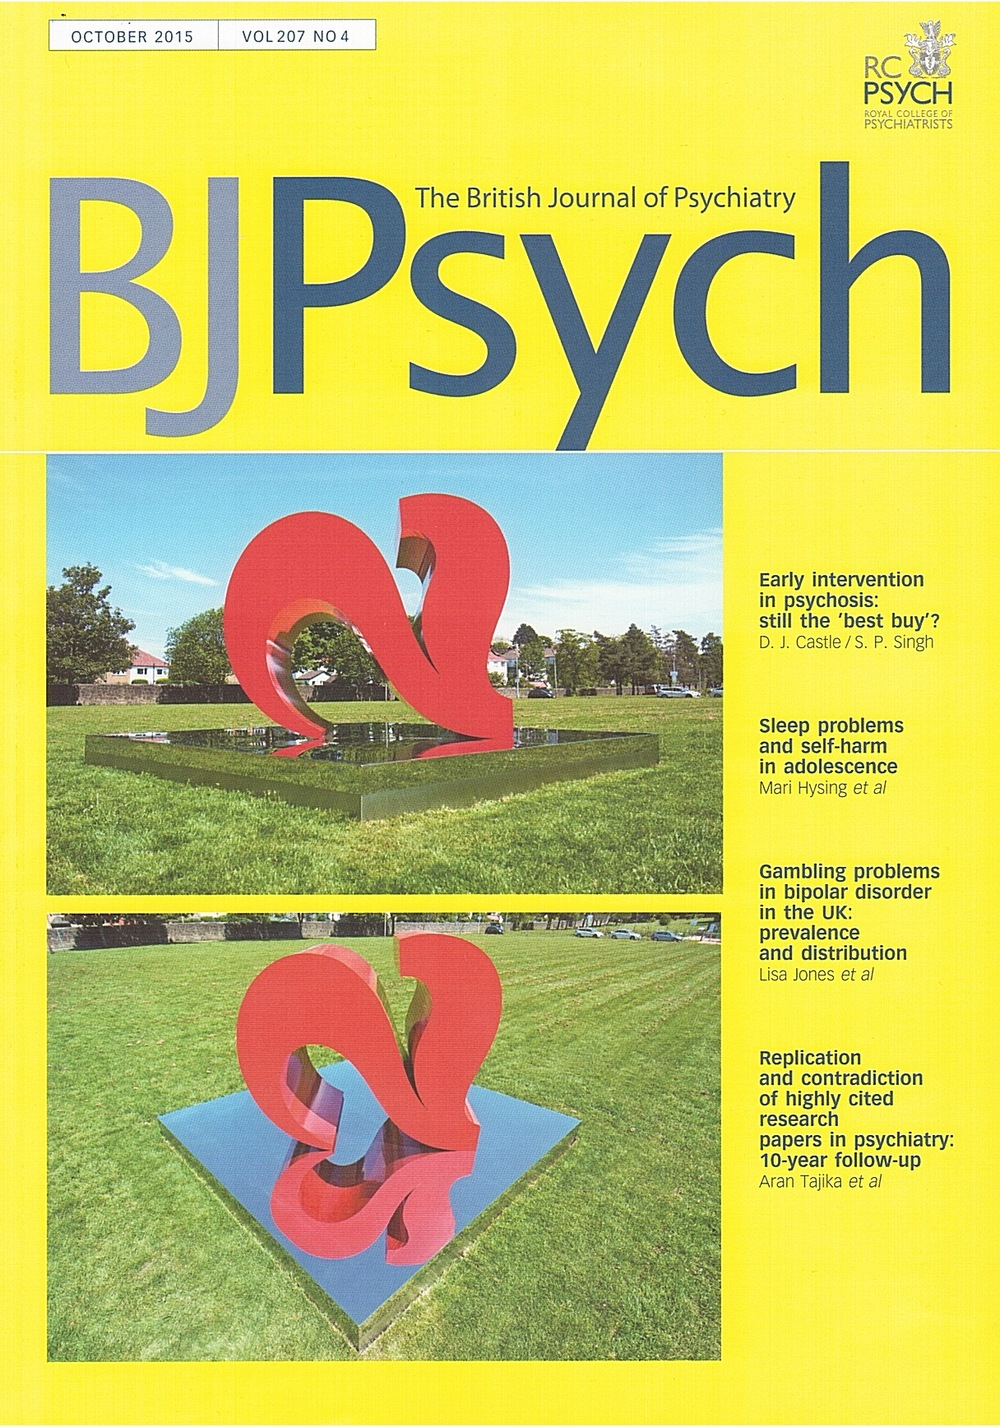 Two Hearts featured on the October 2015 Cover of The British Journal of Psychiatry